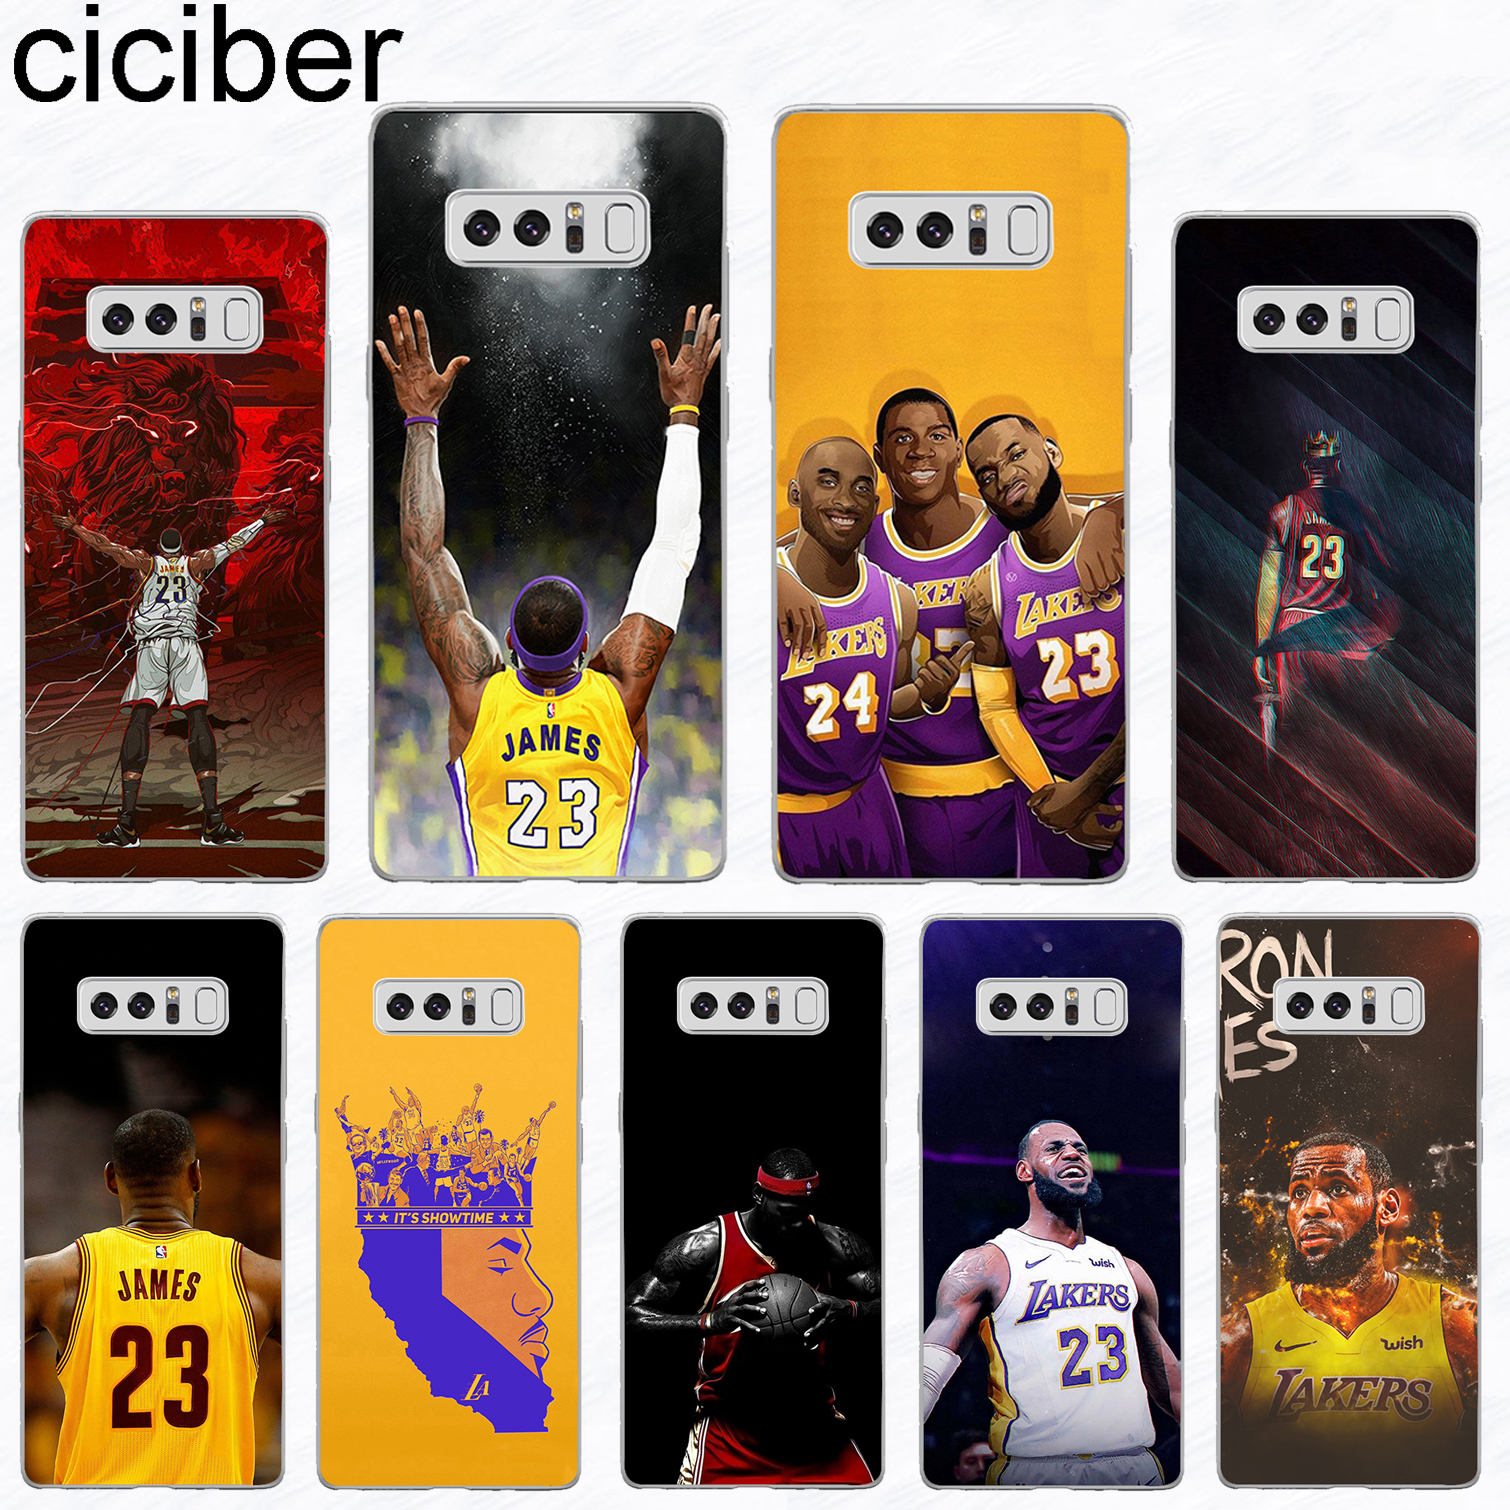 d39514cf37e5 ciciber For Samsung Galaxy S 5 6 7 8 9 Edge Plus Soft Silicone TPU LeBron  James Phone Case For Galaxy Note 3 4 5 8 9 Fundas Capa-in Fitted Cases from  ...